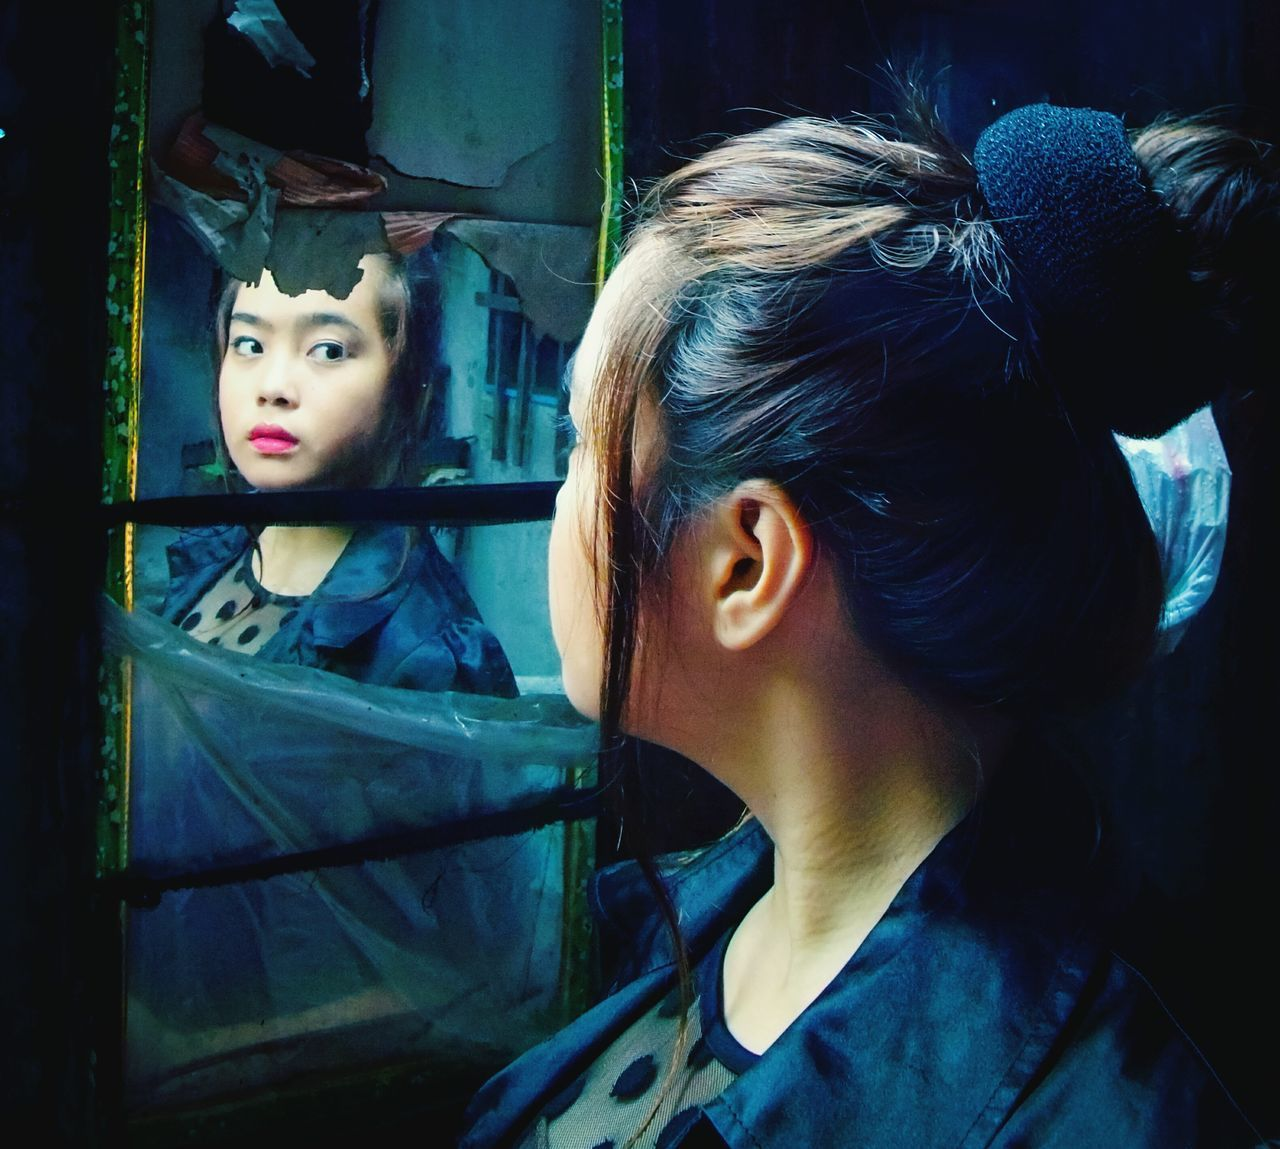 The Girl The Mirror Taking Photos Check This Out Art Outdoors Photograpghy  Beauty In Ordinary Things Enjoying Life Portrait Of A Woman Woman Portraiture Womancreative Creativity Has No Limits People And Places